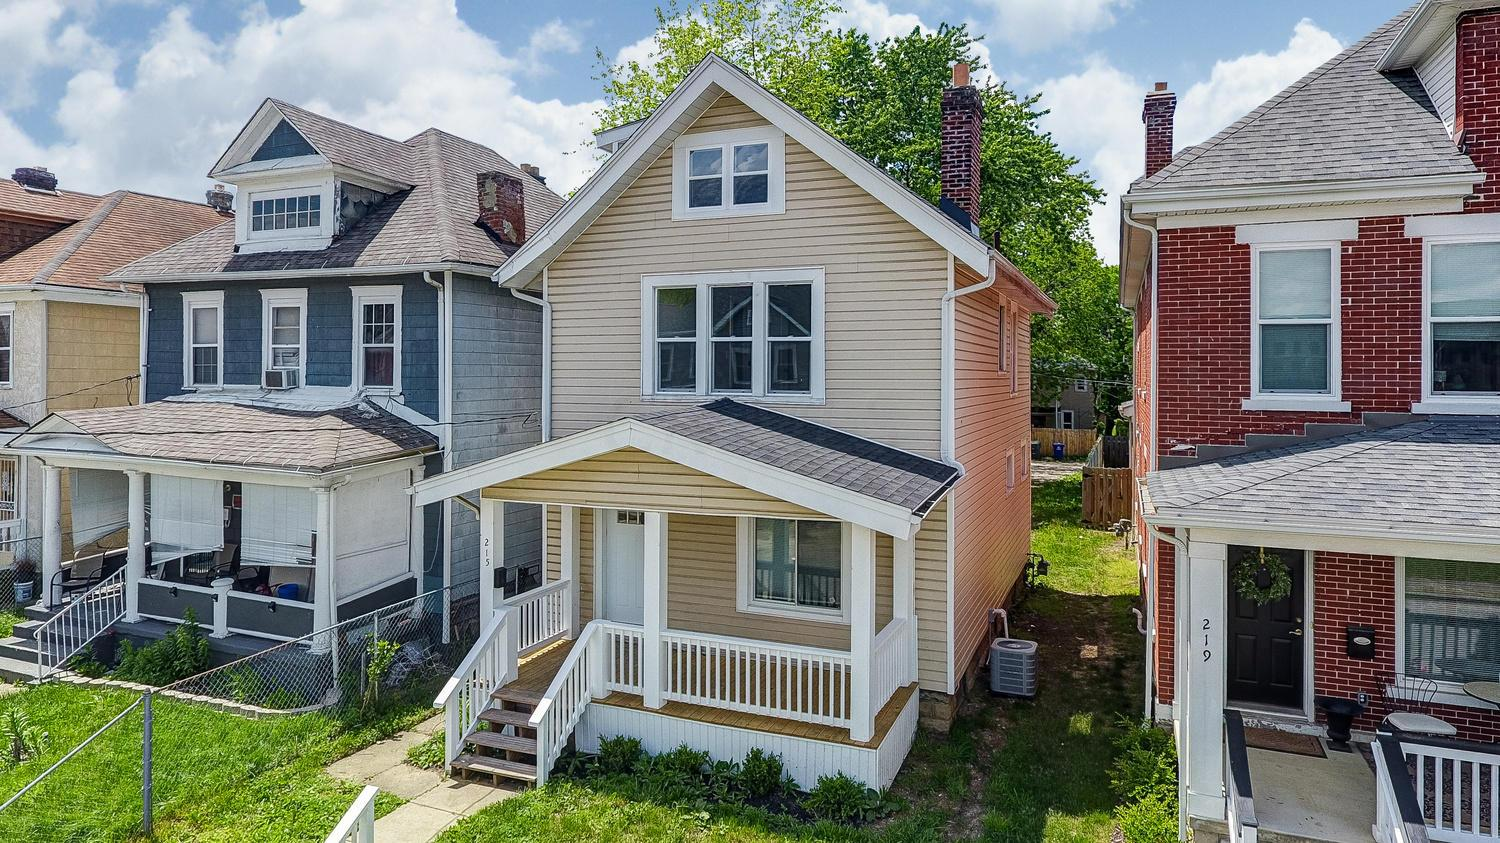 Property for sale at 215 N 22nd Street, Columbus,  Ohio 43203